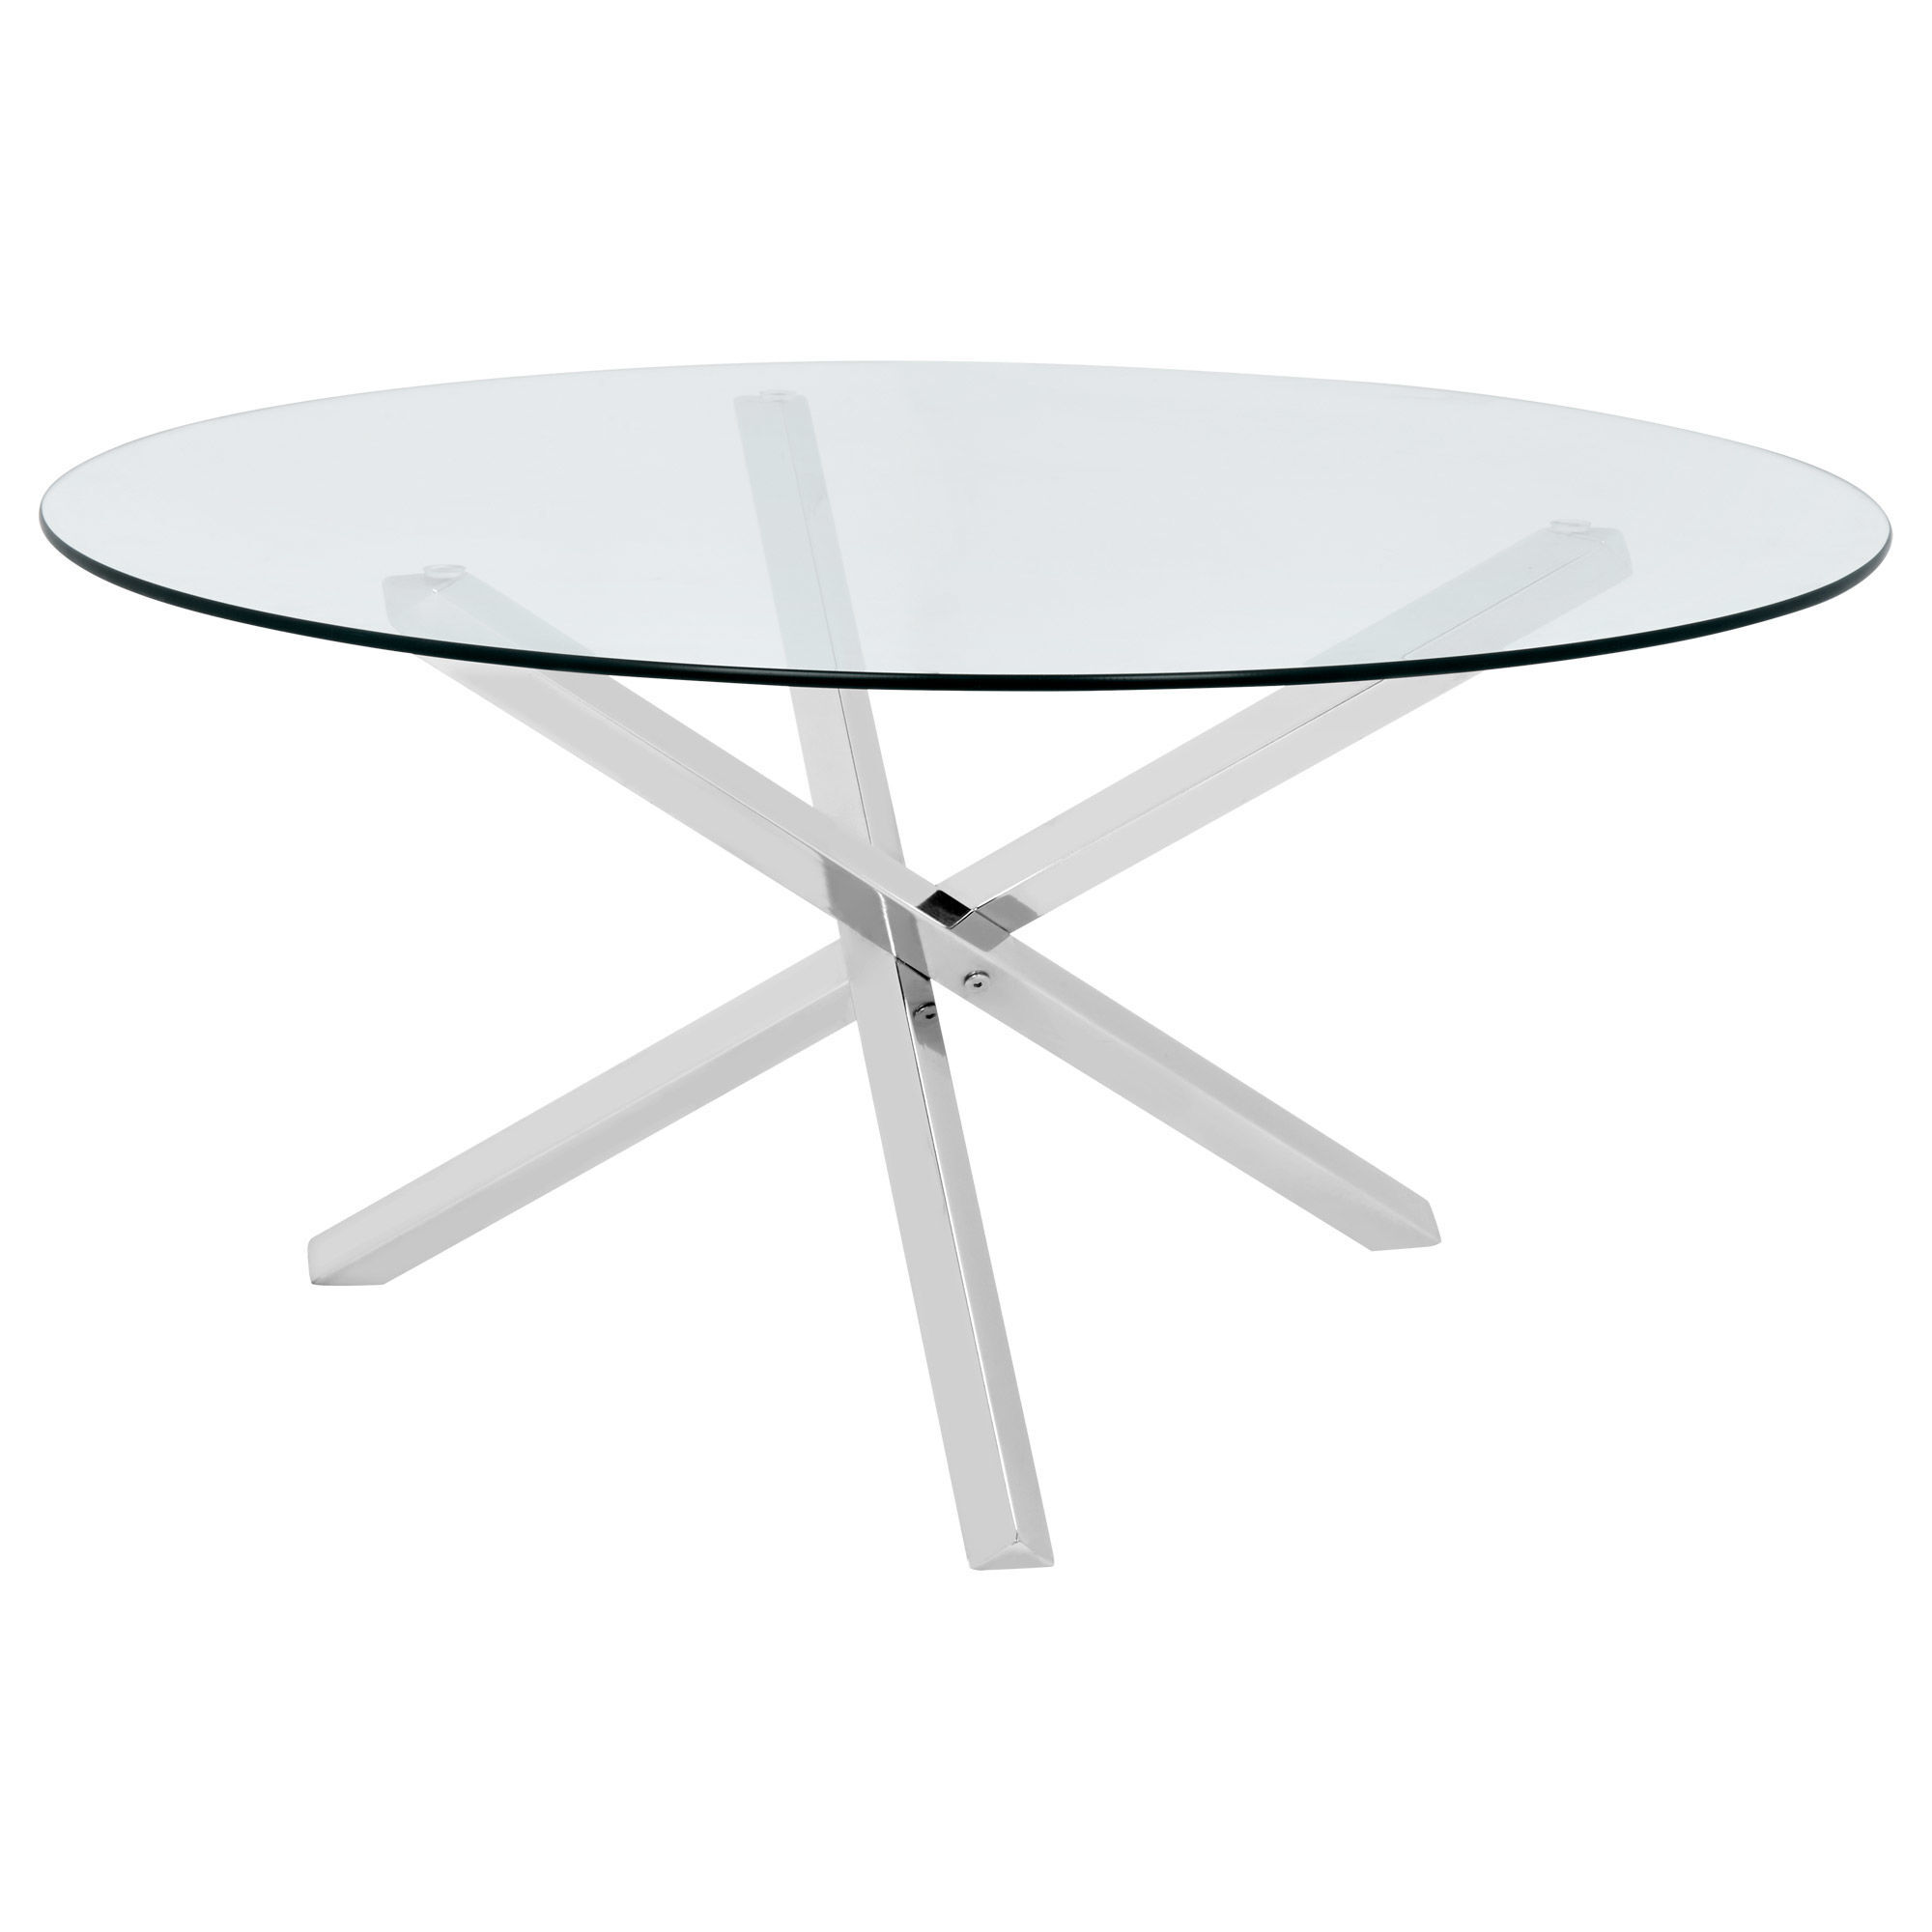 Coffee Tables Designed in Canada High Style Low Prices Bouclaircom